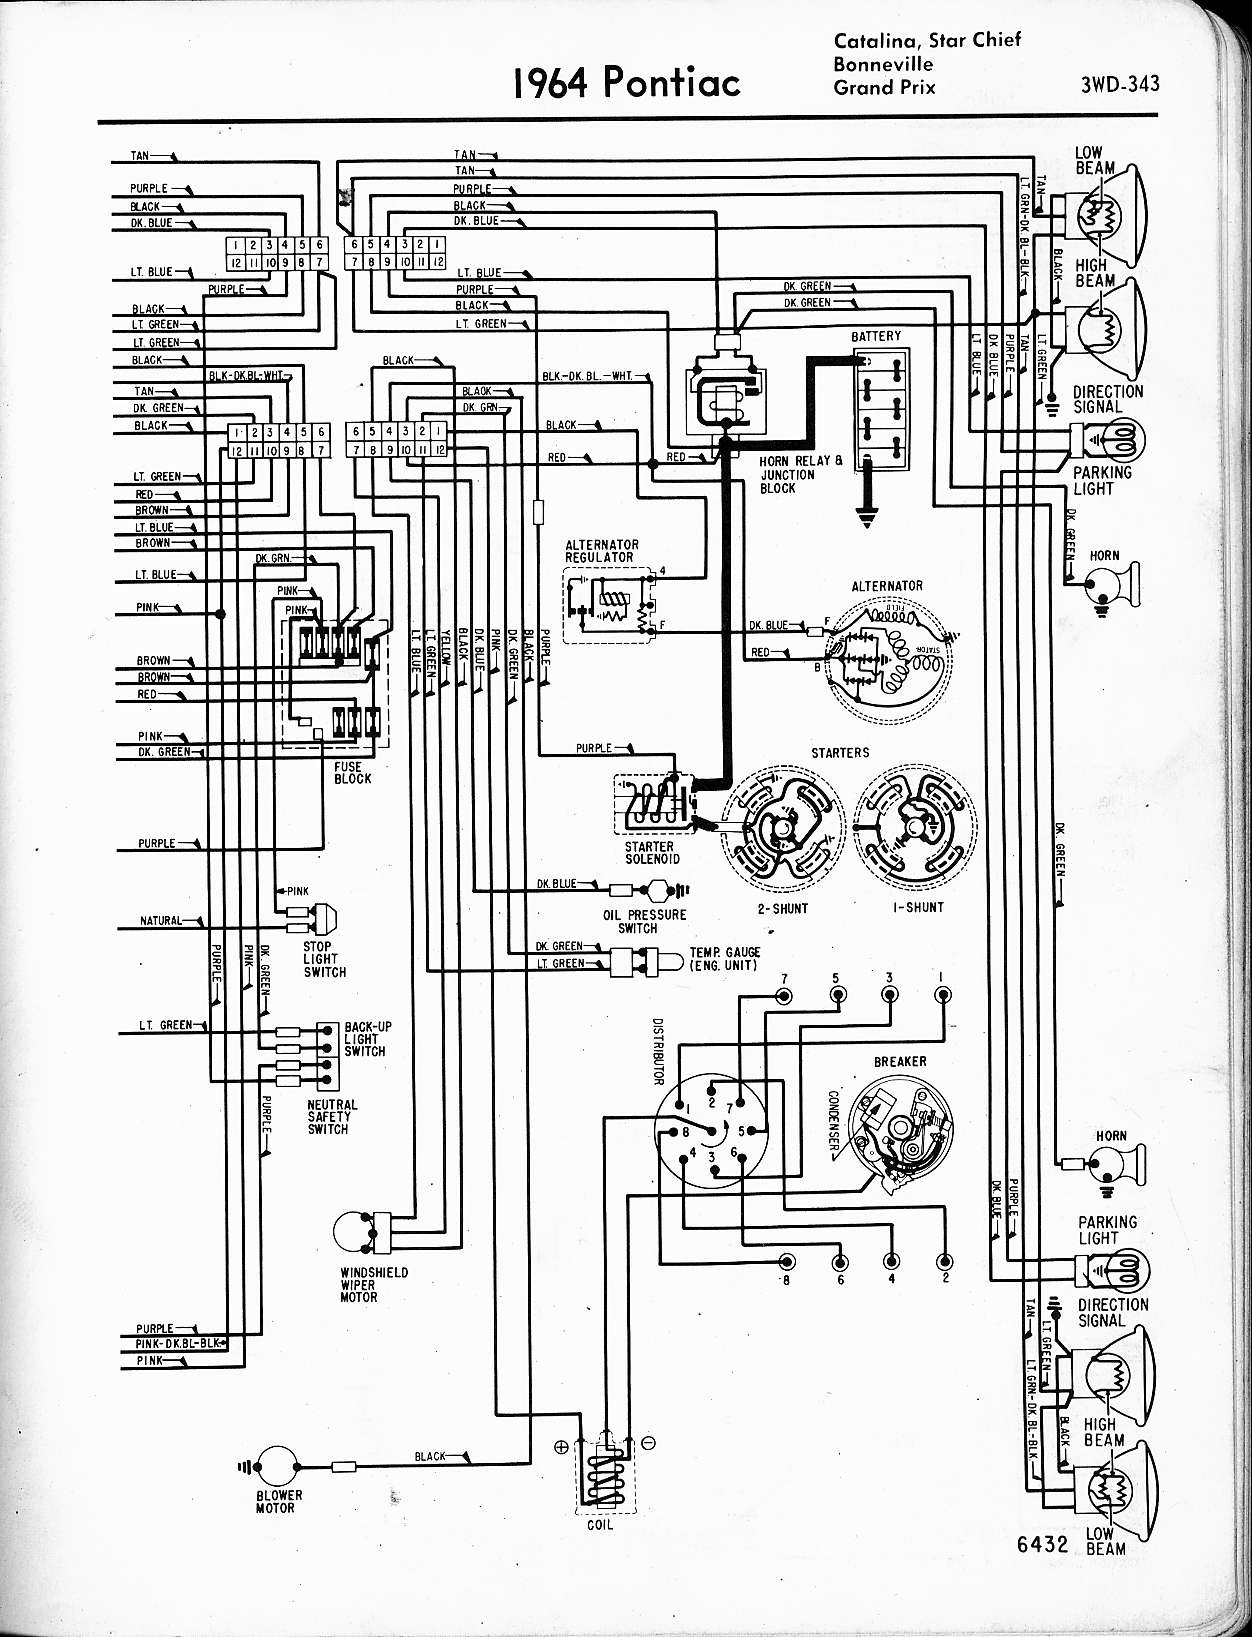 Pontiac Engine Wiring Diagram : Firebird ignition switch wiring free engine image